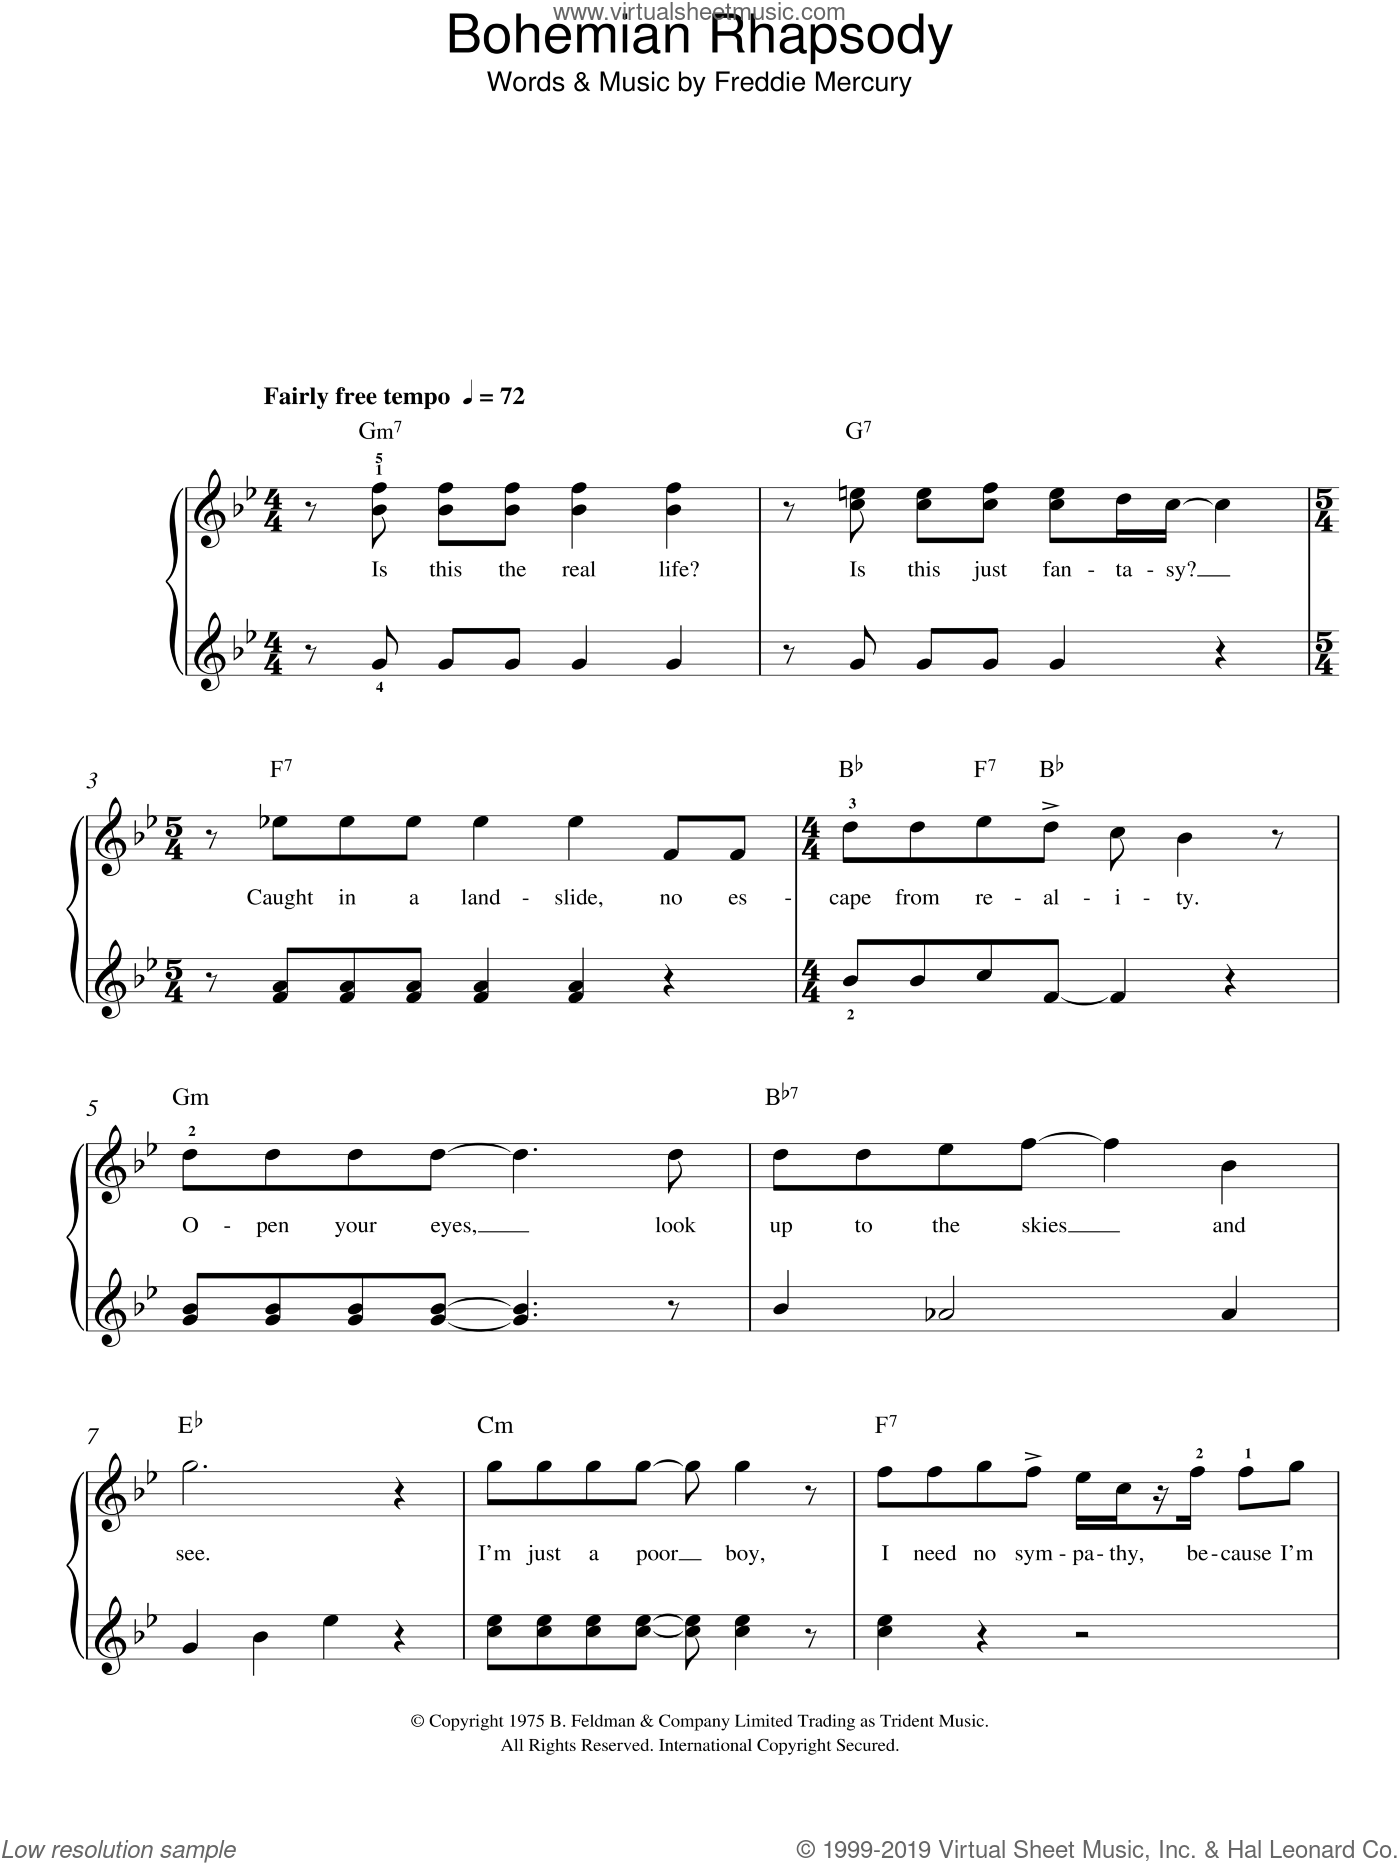 Bohemian Rhapsody sheet music for piano solo (chords) by Freddie Mercury